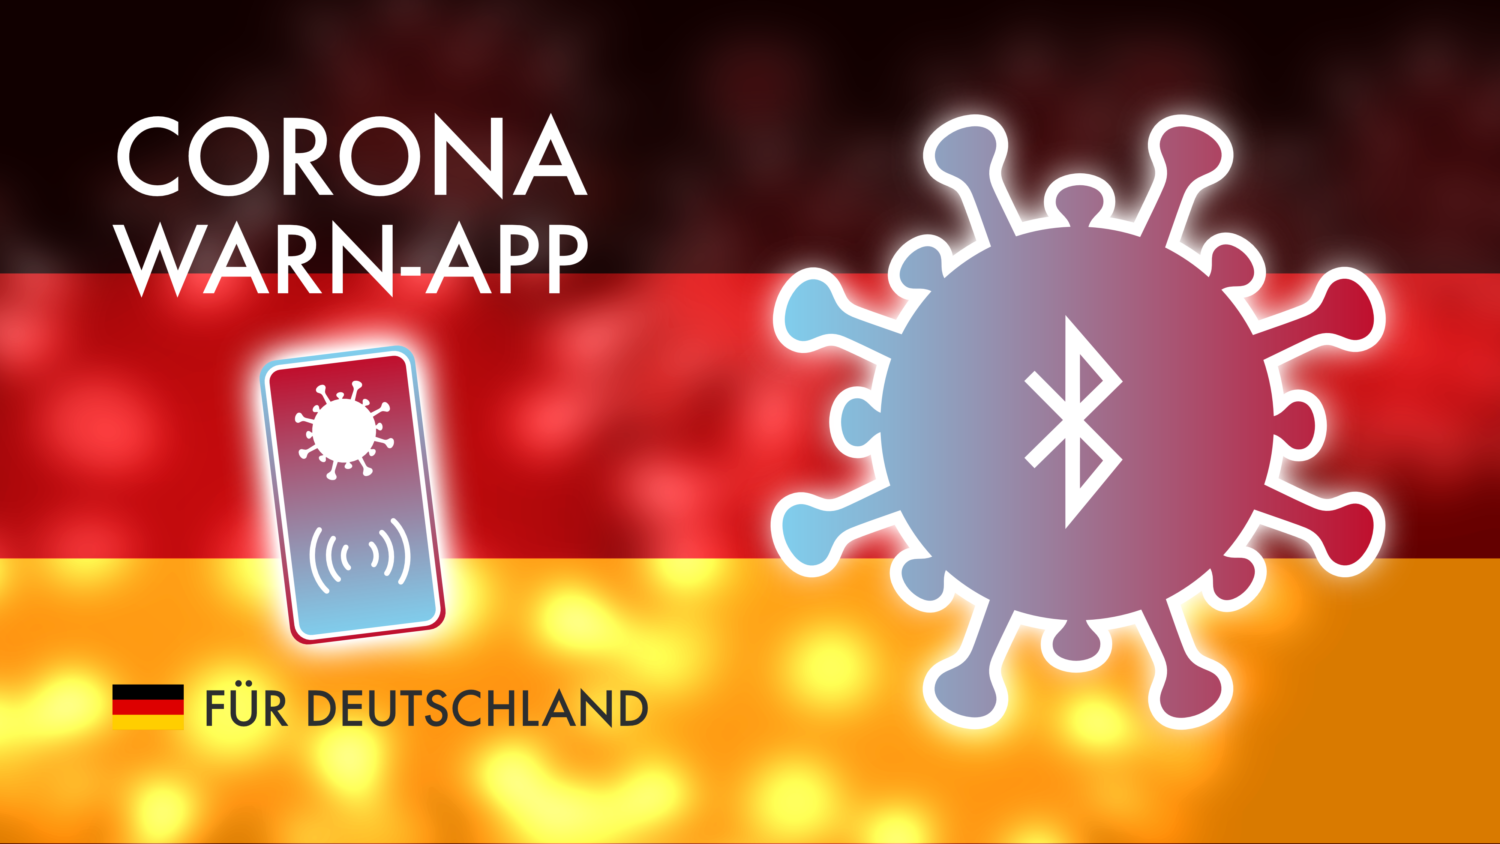 Gratis Download von iXimus.de: Corona-Warn-App, iOS, Adroid, Deutschland, Covid-19, Corona, Application, Deutschland-Flagge, #000230